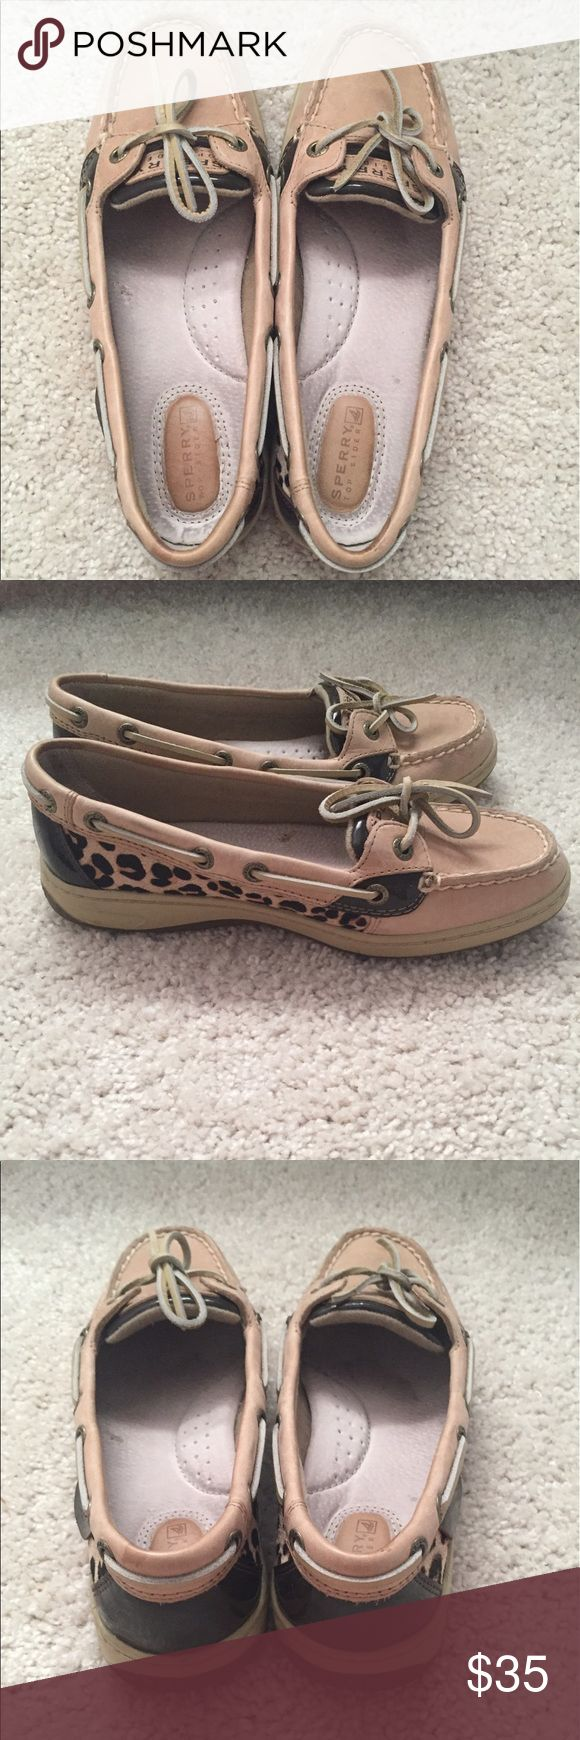 Sperry Top-Sider Angelfish boat shoes - leopard Sperry Angelfish boat shoes with a leopard side detail. Very good condition- only worn a few times. Sperry Shoes Flats & Loafers